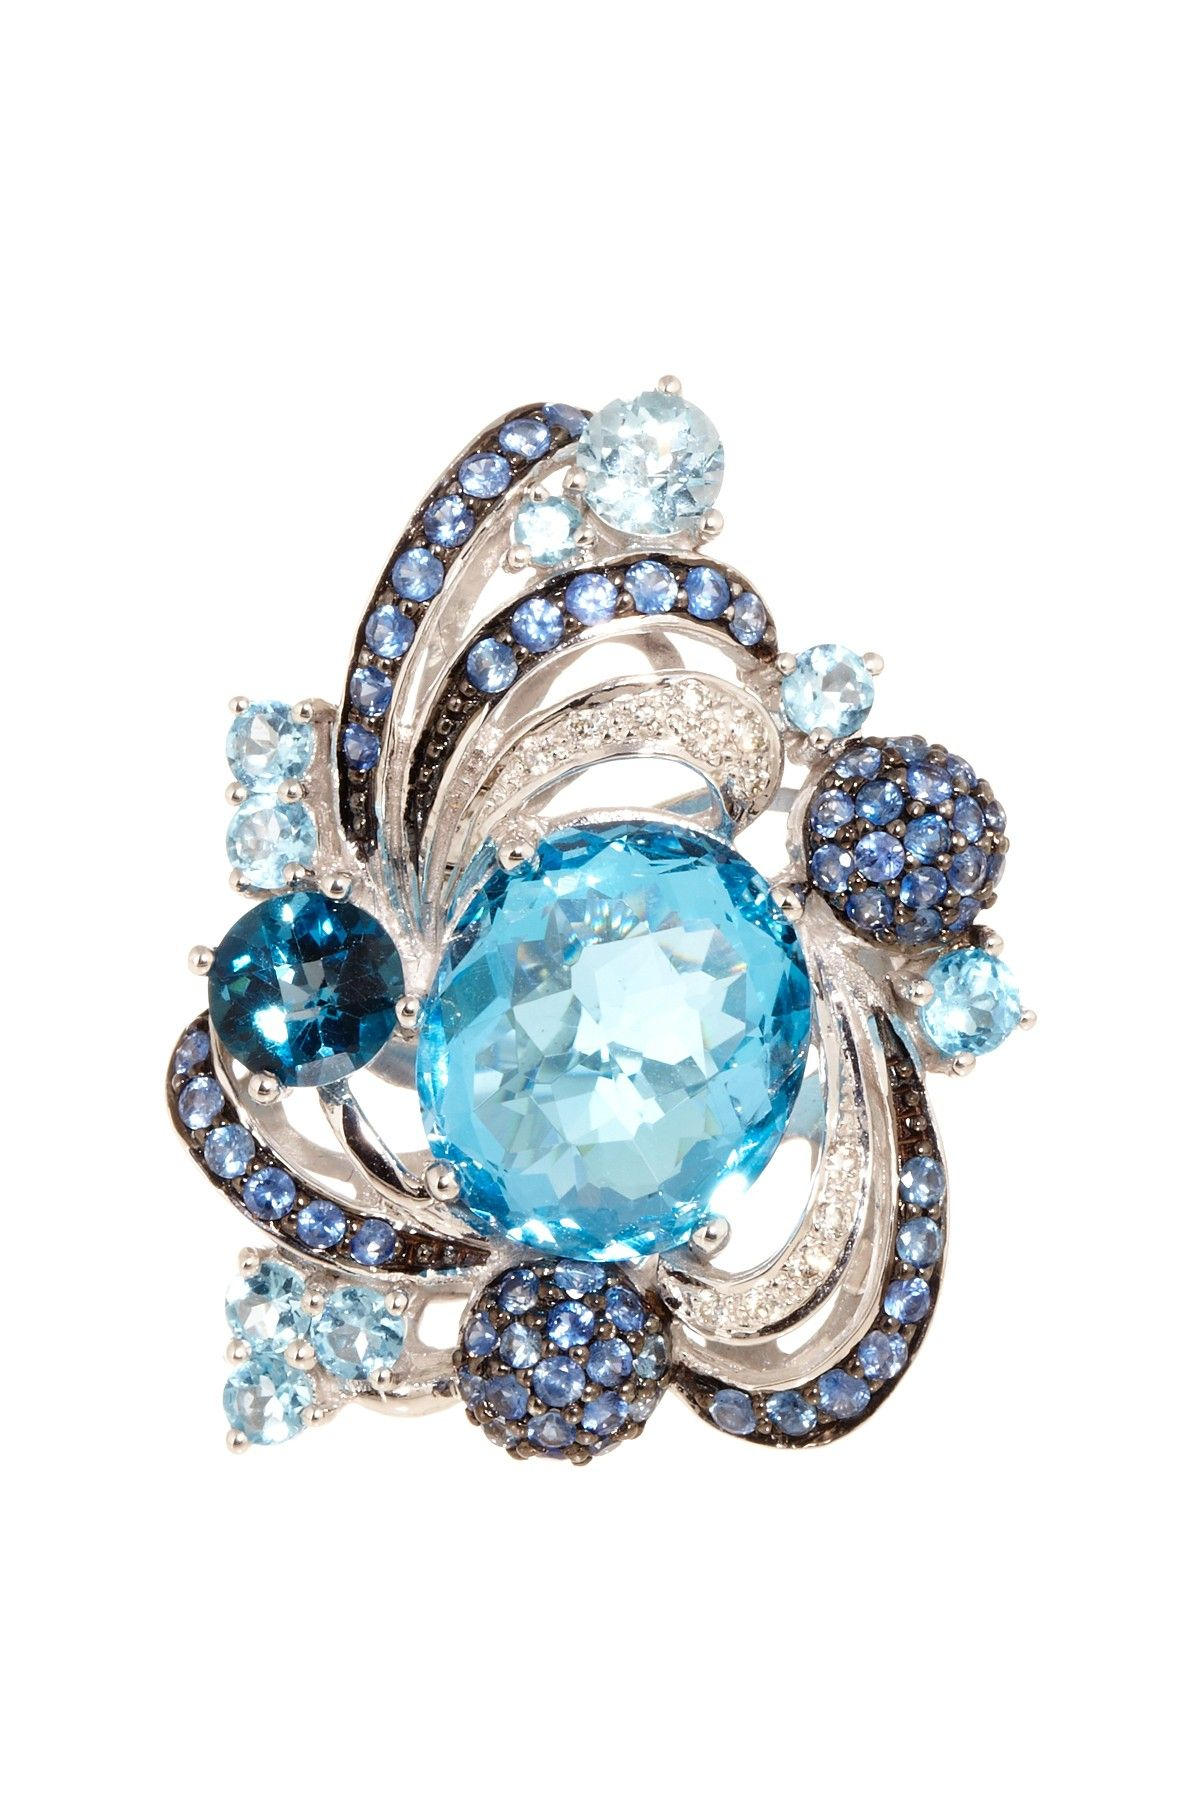 fffb1aec0 Encore by Le Vian 14K White Gold Blue Topaz, Sapphire & Diamond Ornate Ring  $1,700